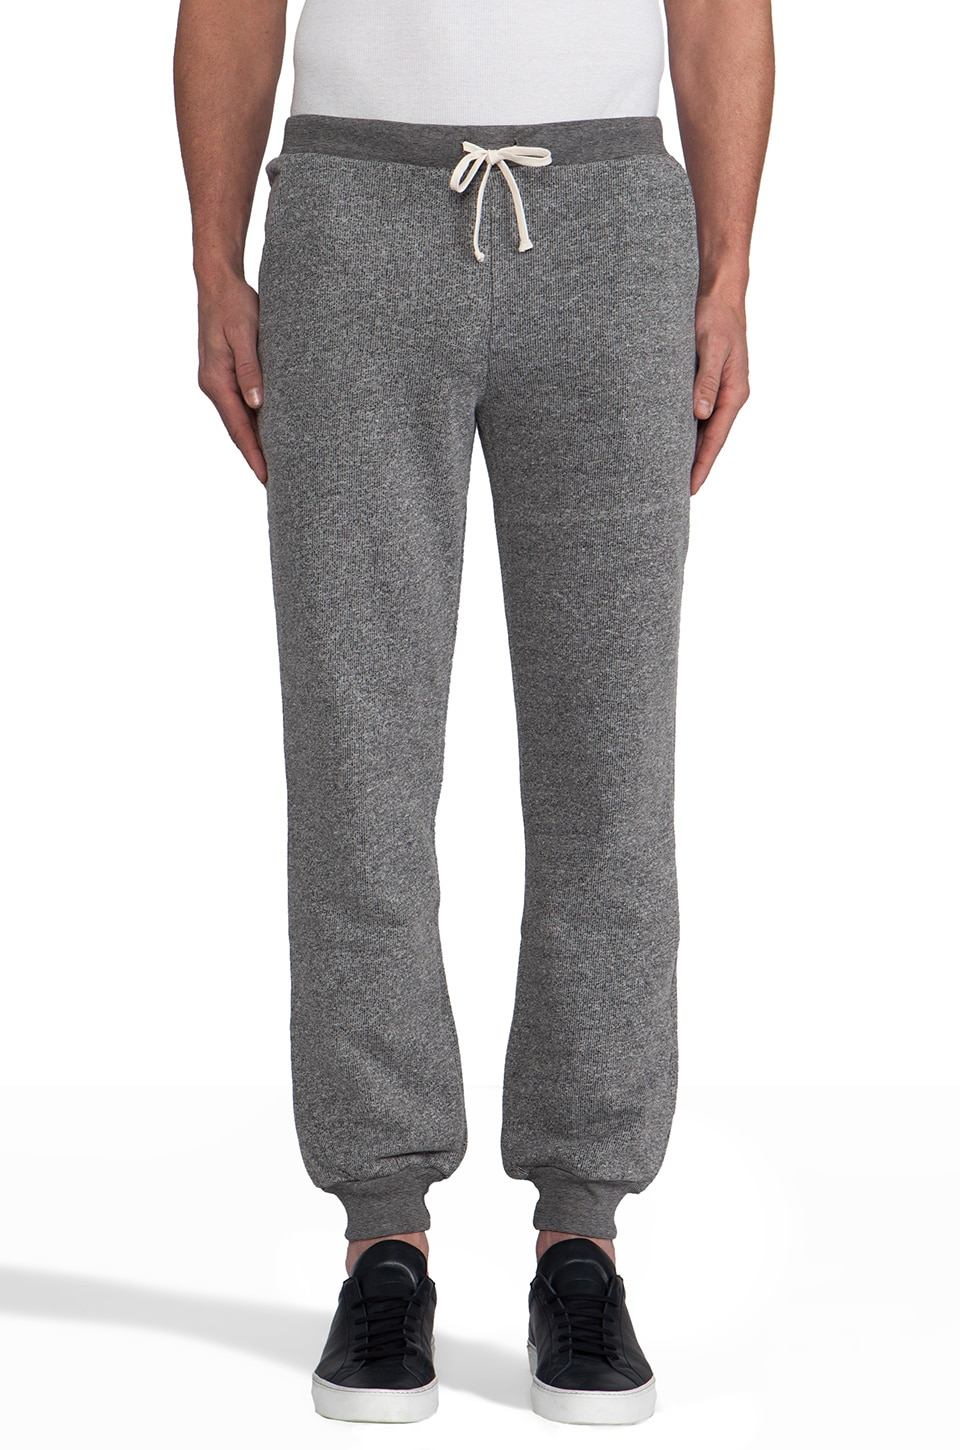 United Stock Dry Goods French Terry Sweatpants in Gray